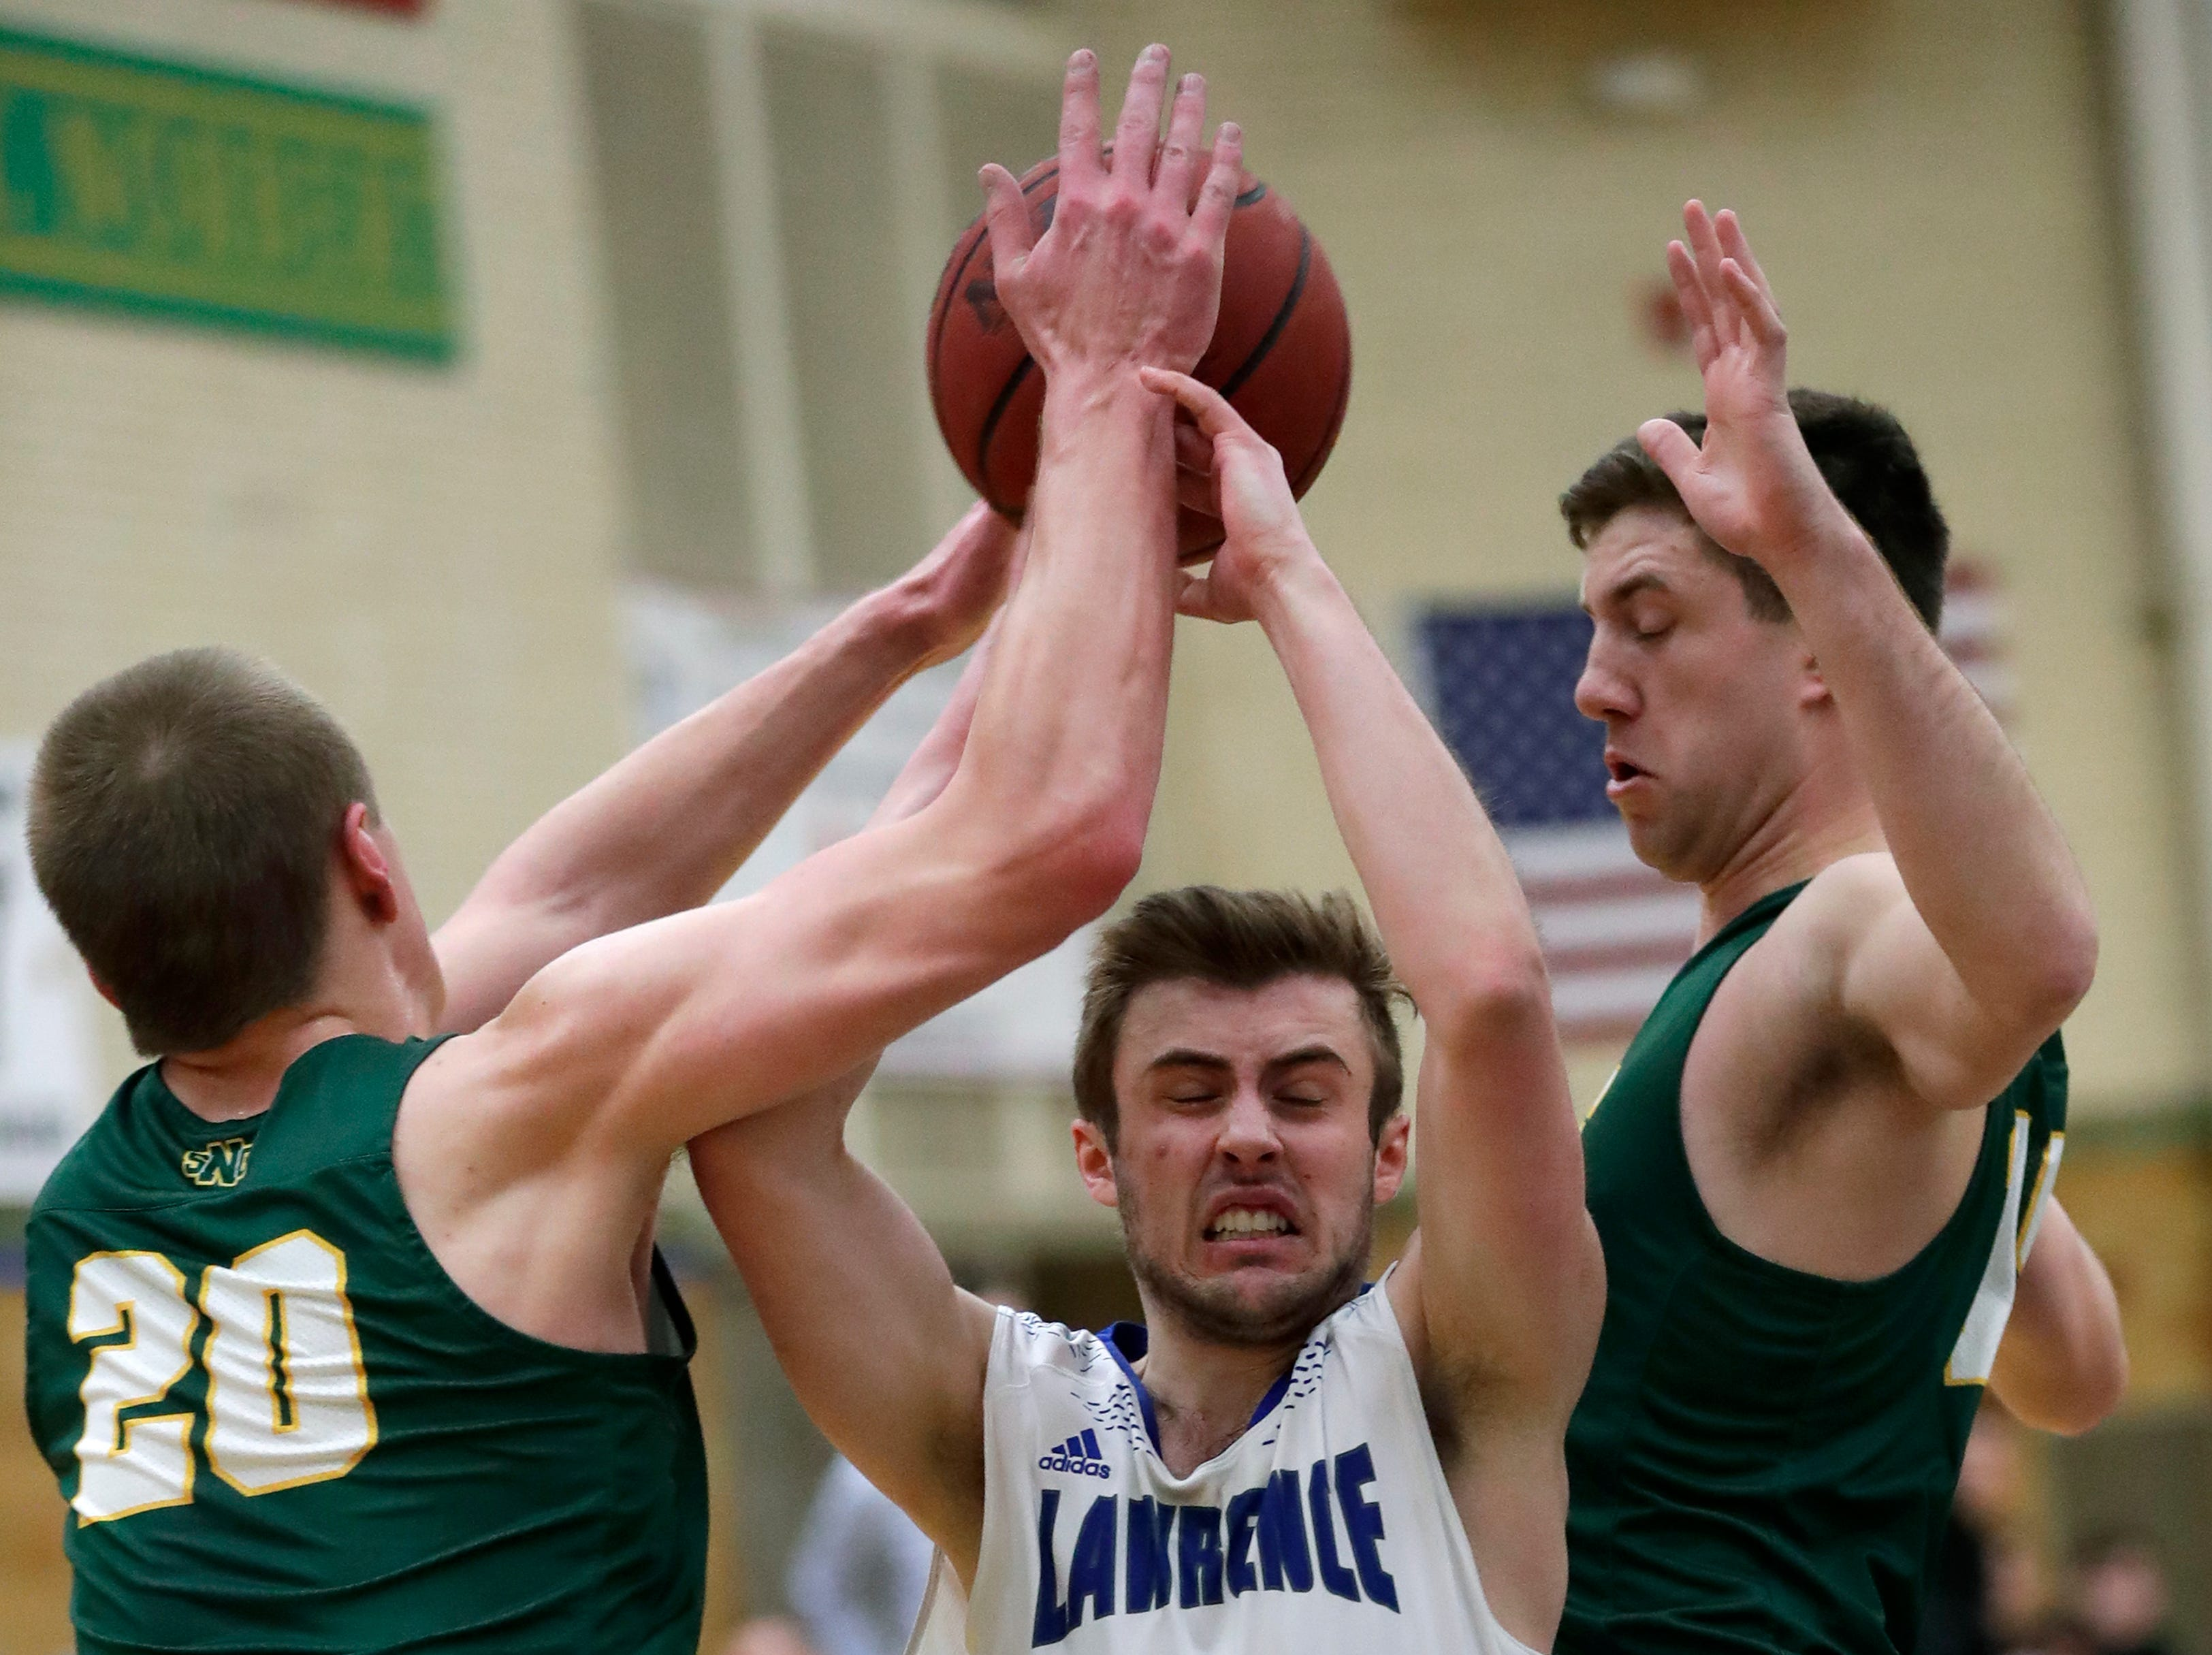 St. Norbert College's Nolan Beirne (20) and Matt Lynch (15) defend against Lawrence University's Quinn Fisher (2) during their men's basketball game Thursday, January 31, 2019, at Alexander Gymnasium in Appleton, Wis. 